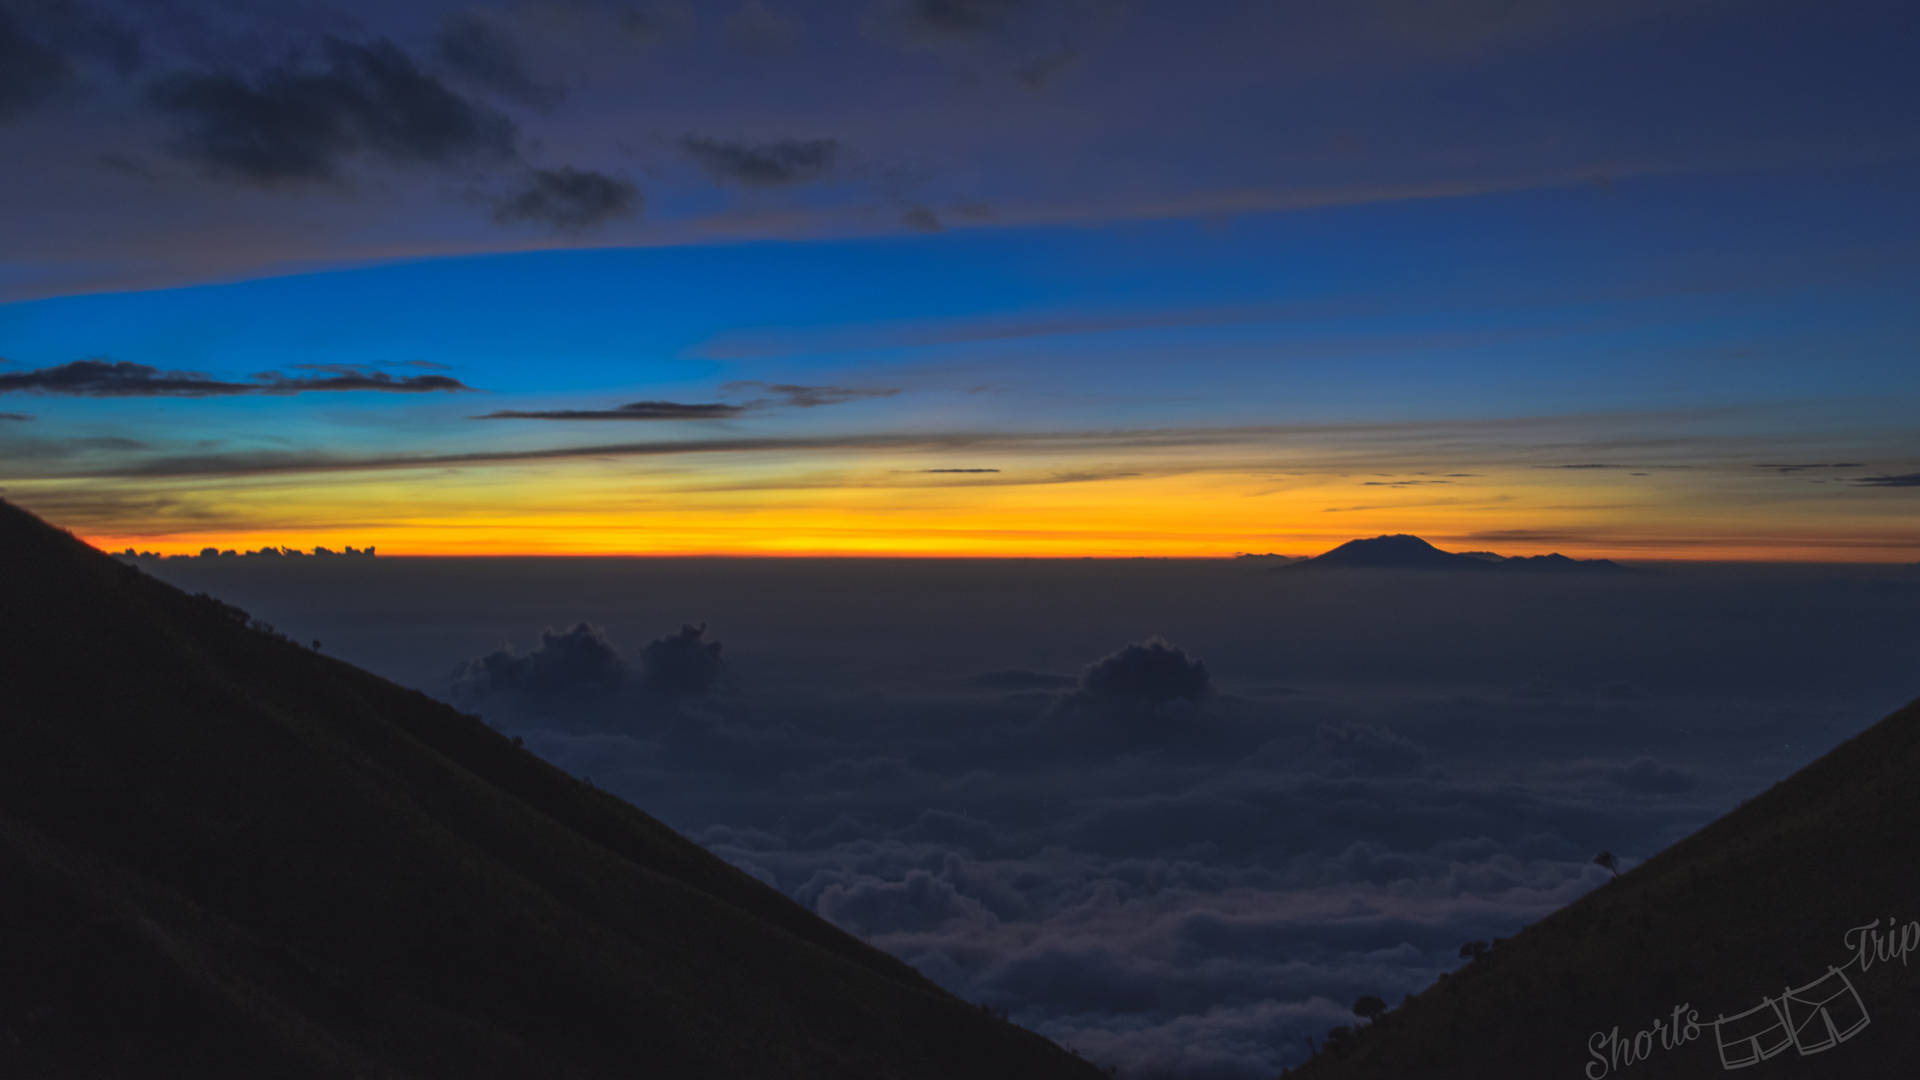 dawn, before the dawn, dawn merabu, sunrise merbabu, night hike merbabu